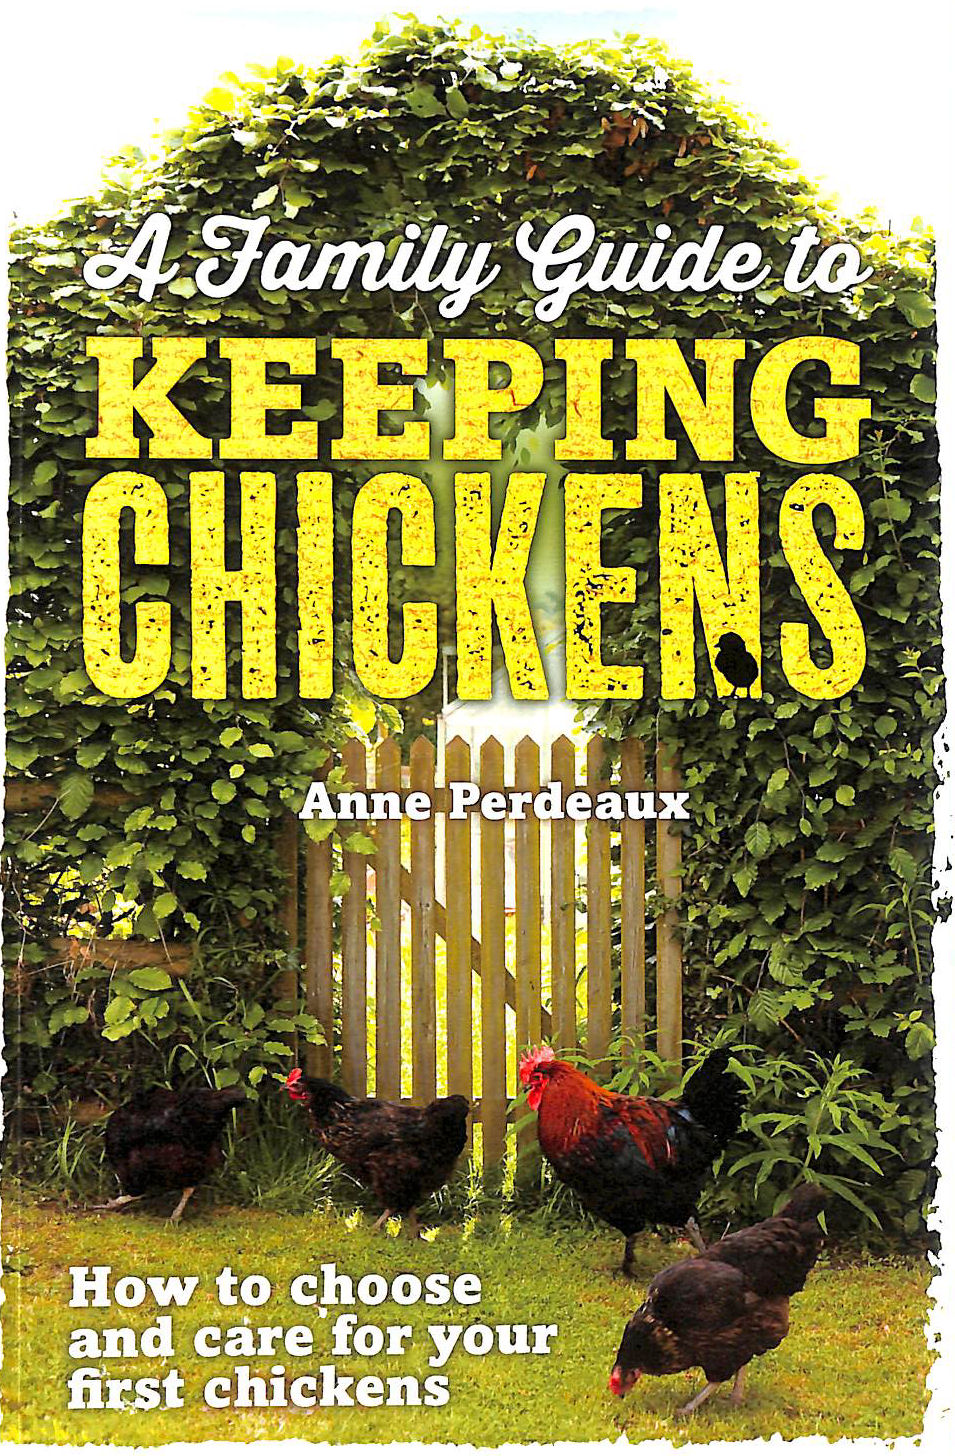 Image for A Family Guide To Keeping Chickens: How to choose and care for your first chickens